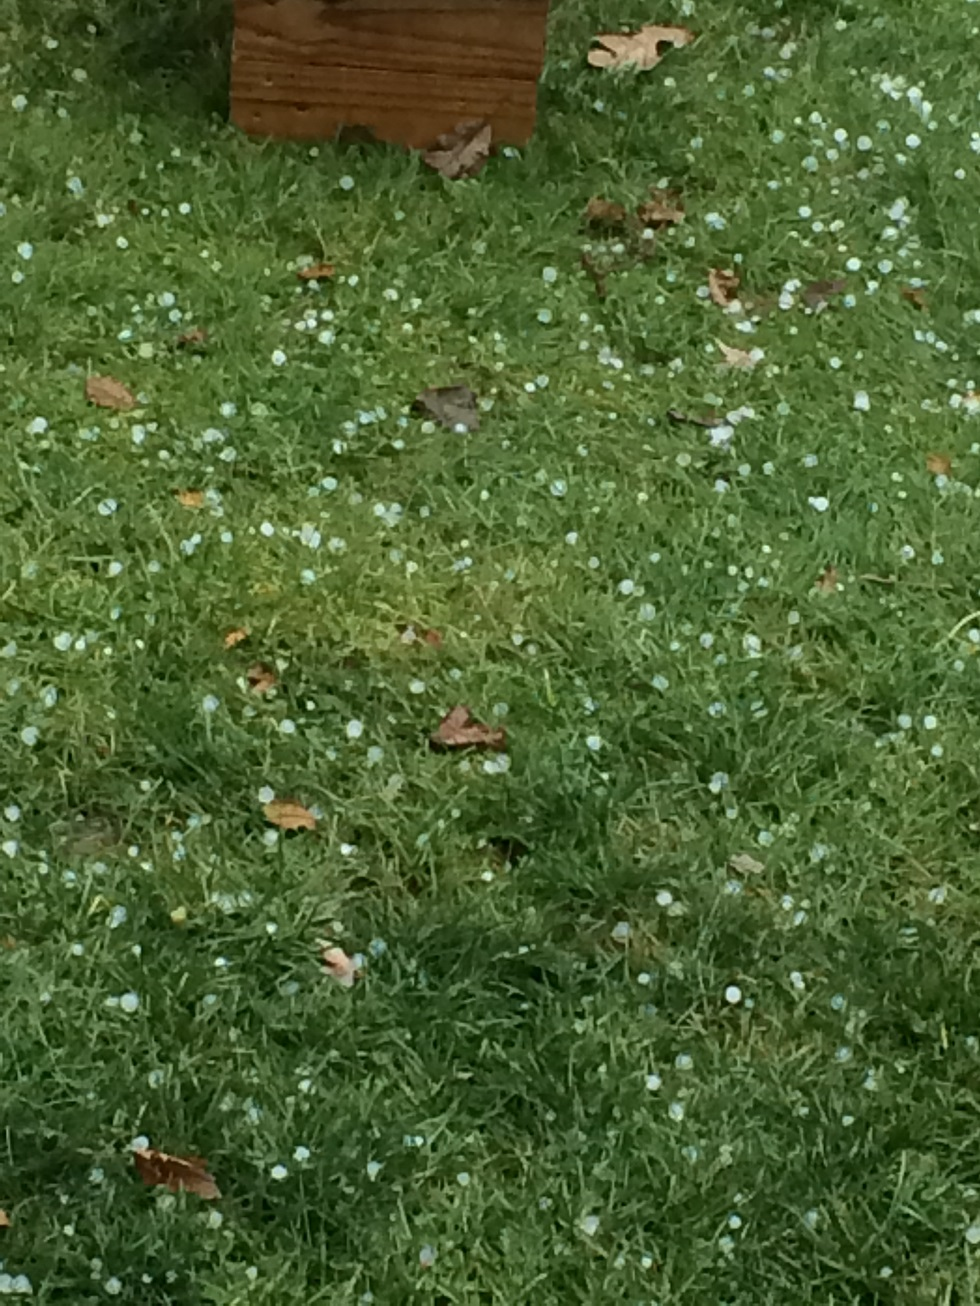 Hail on the ground in Fridley, MN on November 28, 2016